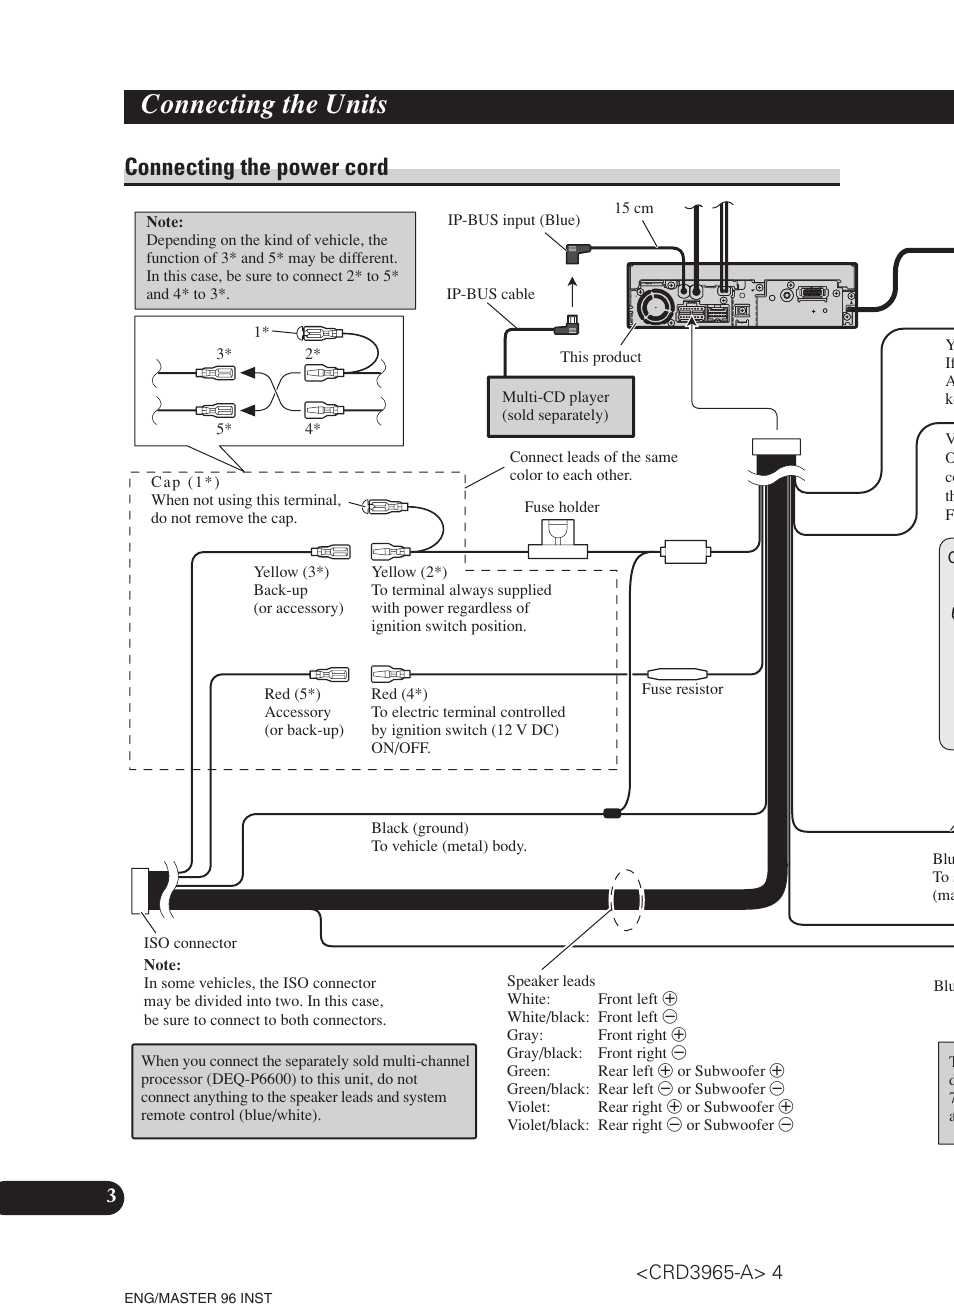 Connecting The Power Cord Units Pioneer Avh P5700dvd Installation Manual User Page 4 86